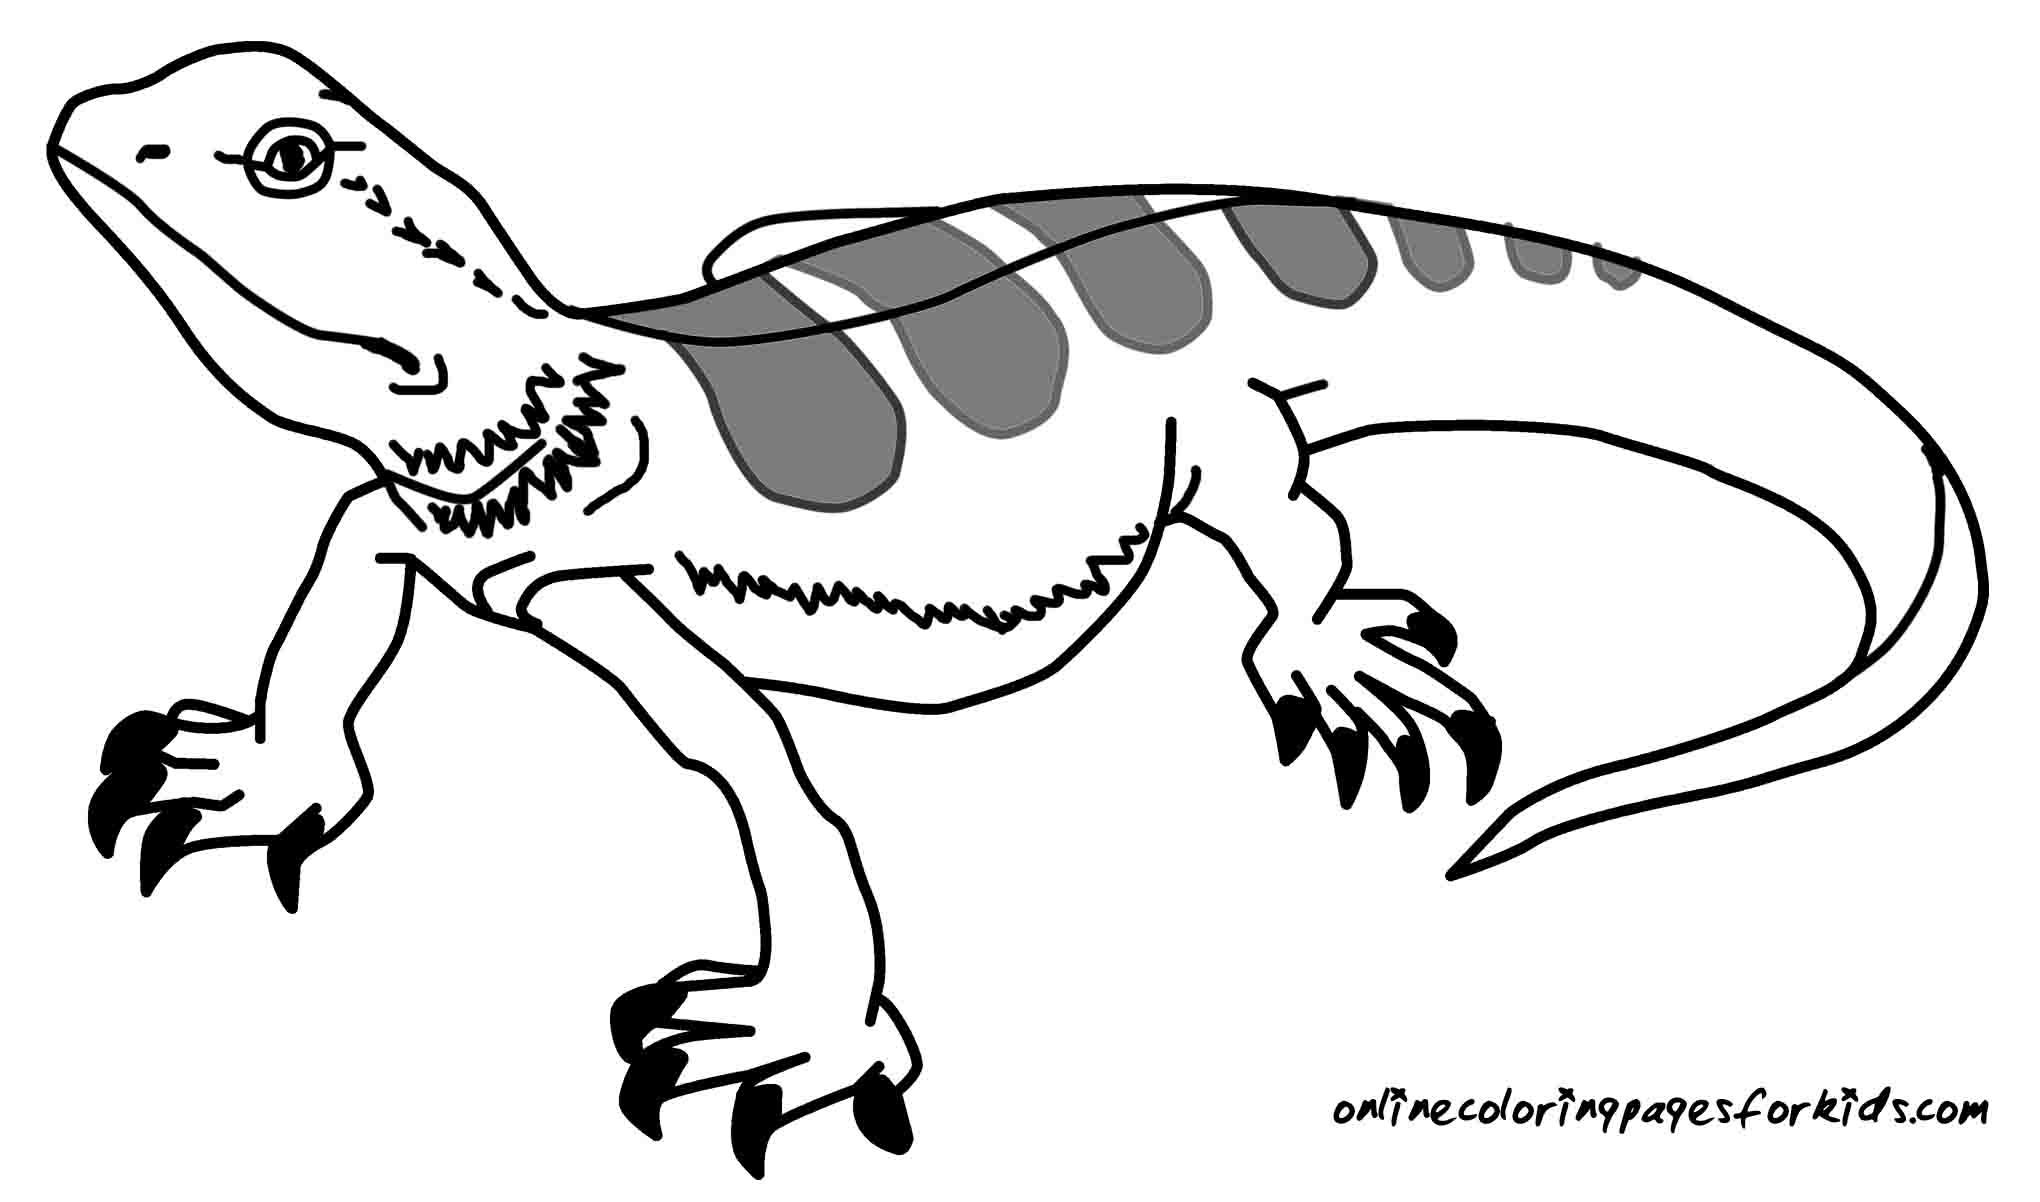 lizard pictures to print lizard coloring pages coloring pages to download and print to lizard print pictures